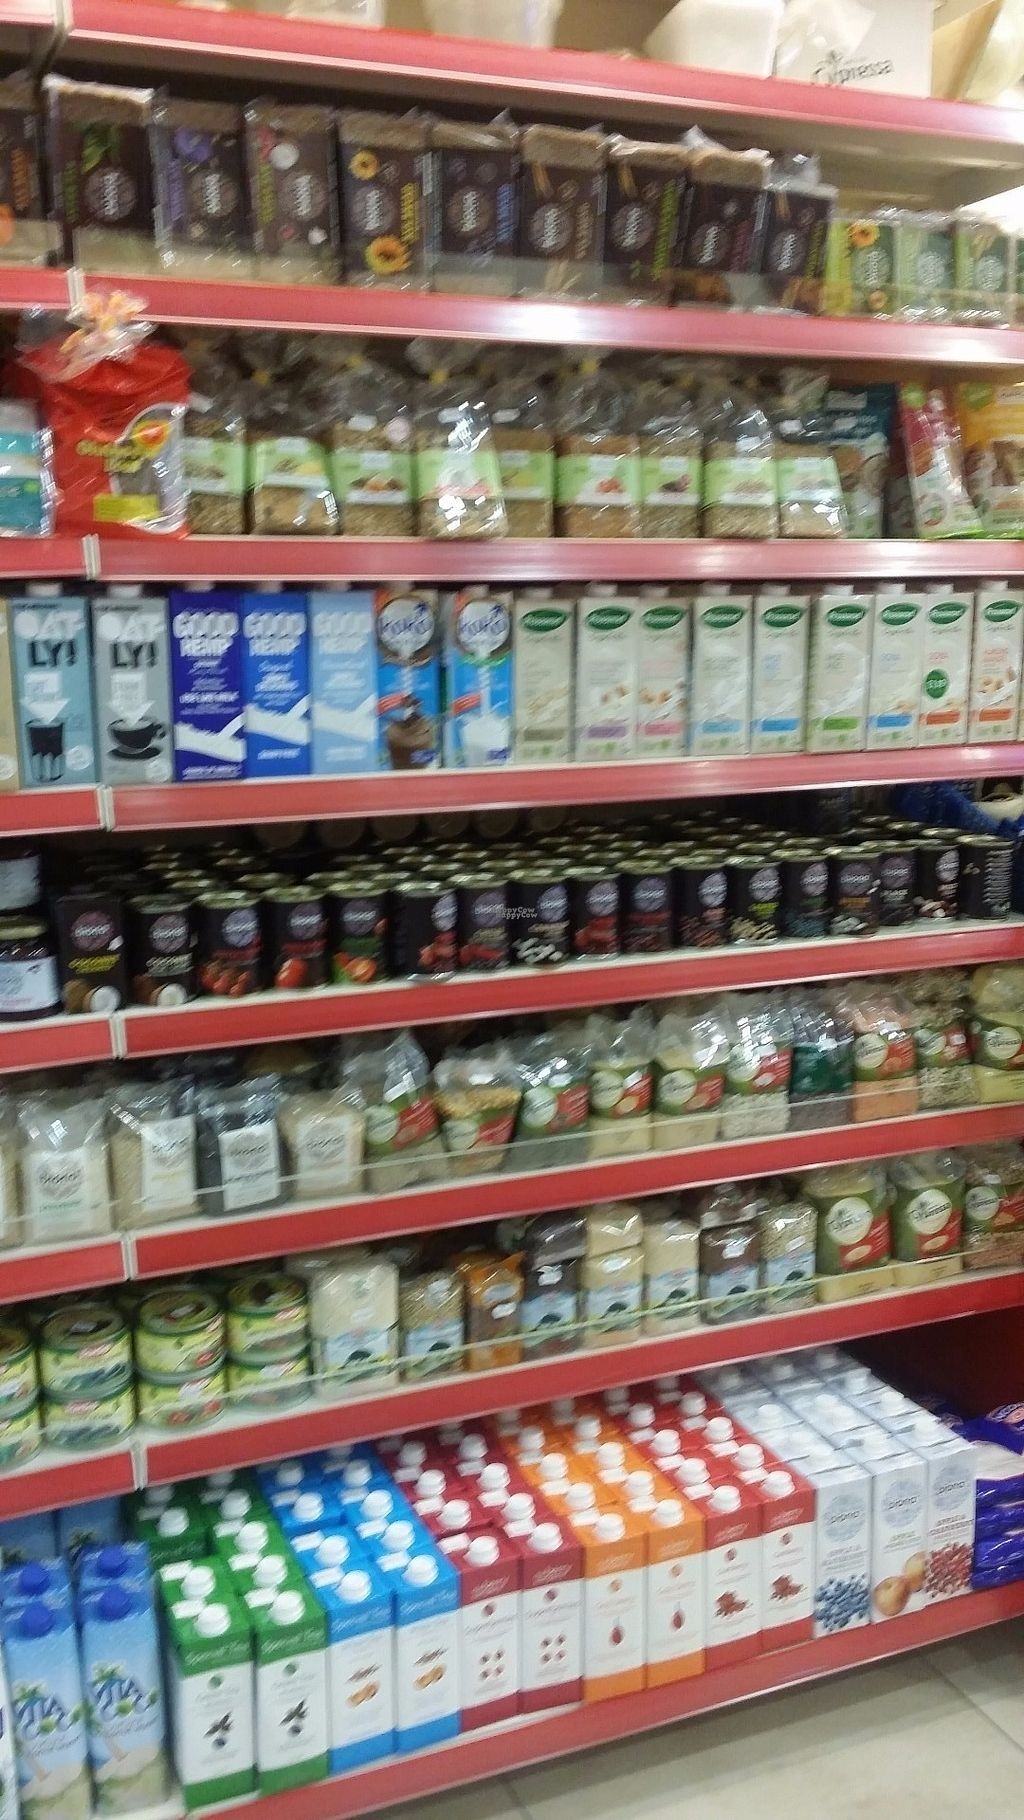 """Photo of CLOSED: Fruit Garden  by <a href=""""/members/profile/roguesby"""">roguesby</a> <br/>So many dairy-free milks! Tons of beans and legumes! <br/> August 26, 2016  - <a href='/contact/abuse/image/79138/171520'>Report</a>"""